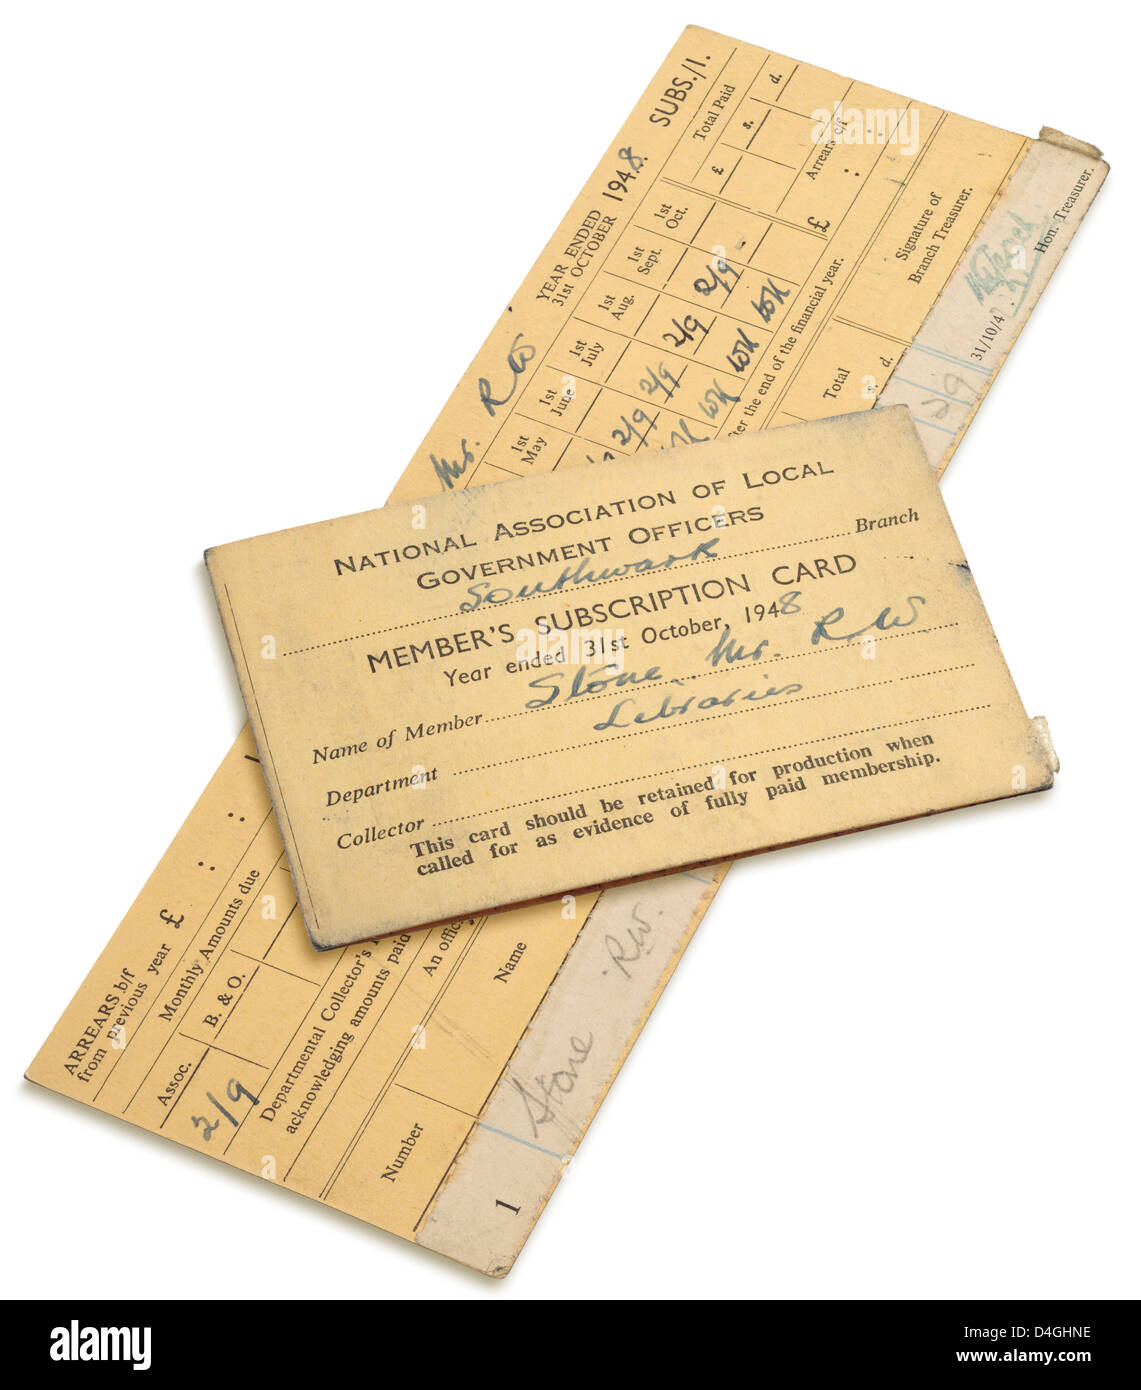 NALGO - National and Local Government Officers' Association - Member's Subscription Card from 1948. - Stock Image